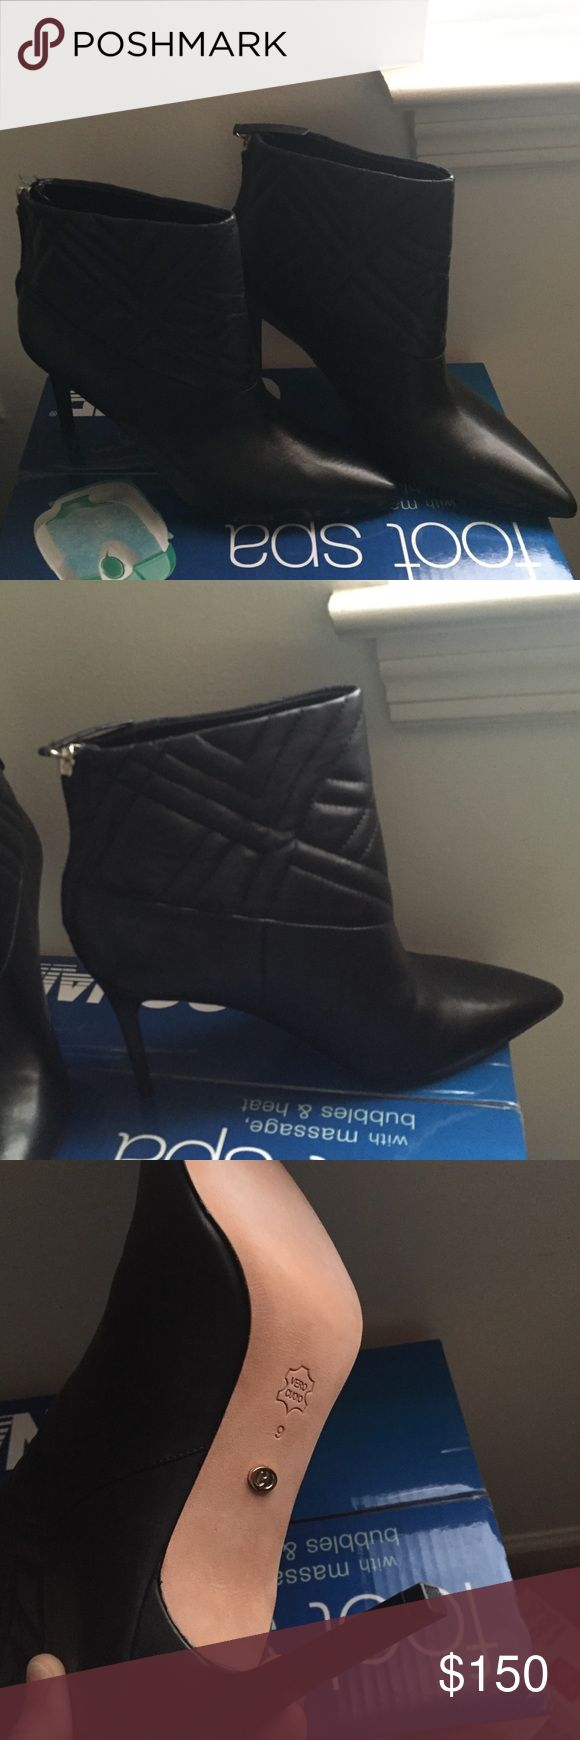 Charles david boots This Charles david boots is a size 9 .finish your winter outfit in this gorgeous boots.  brand new Charles David Shoes Ankle Boots & Booties